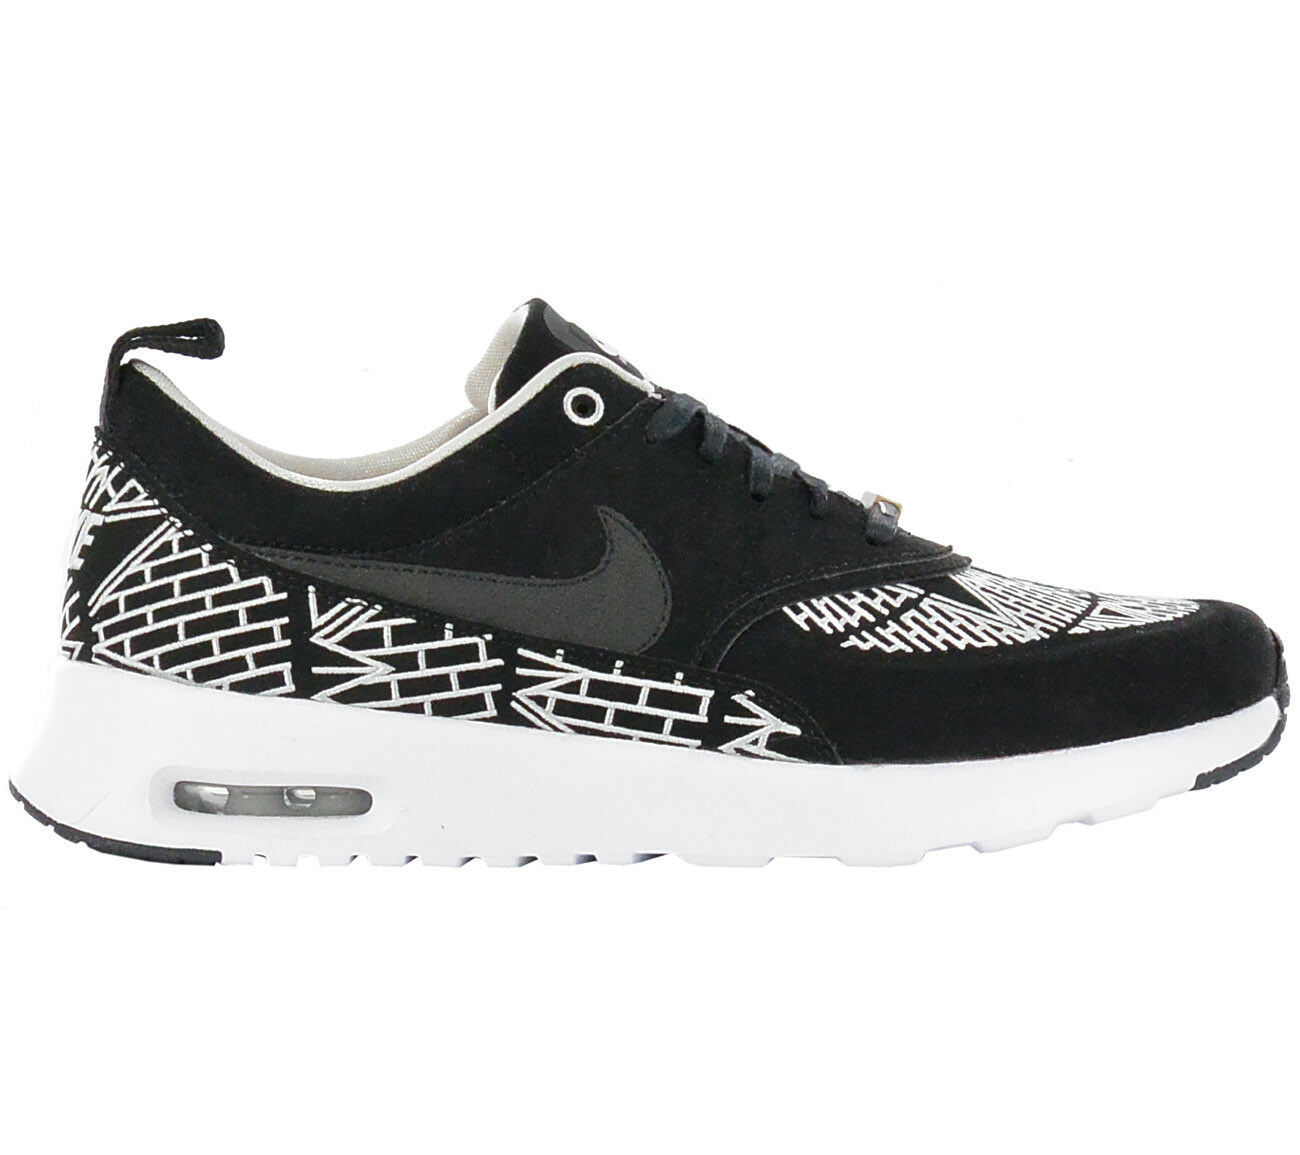 Nike Air Max Thea QS  New York  shoes Womens Sneaker Special Model Sneakers